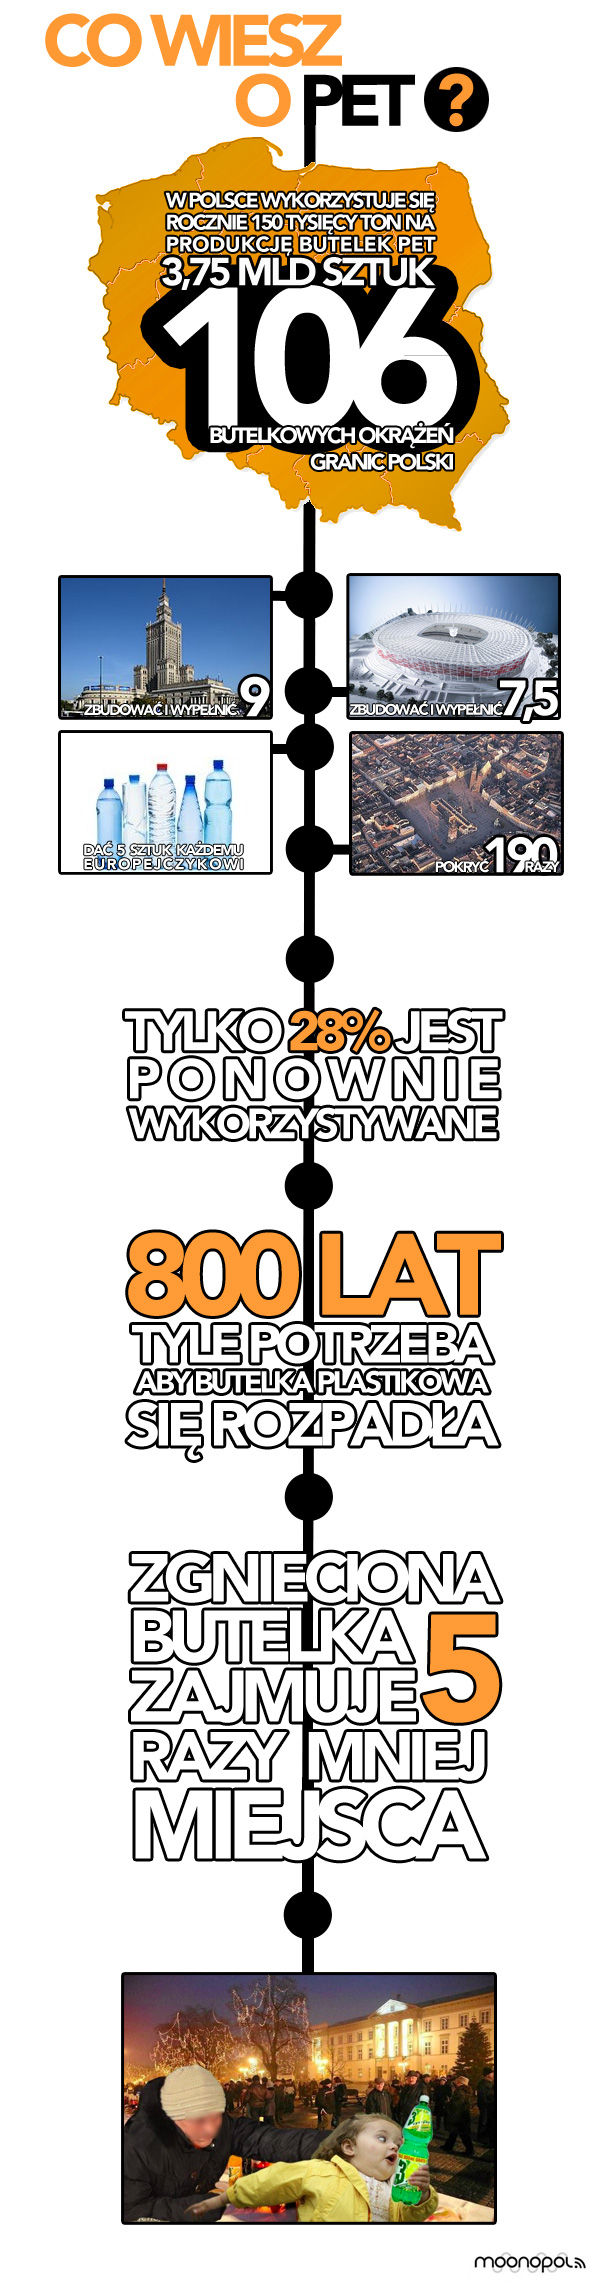 Co wiesz o PET?